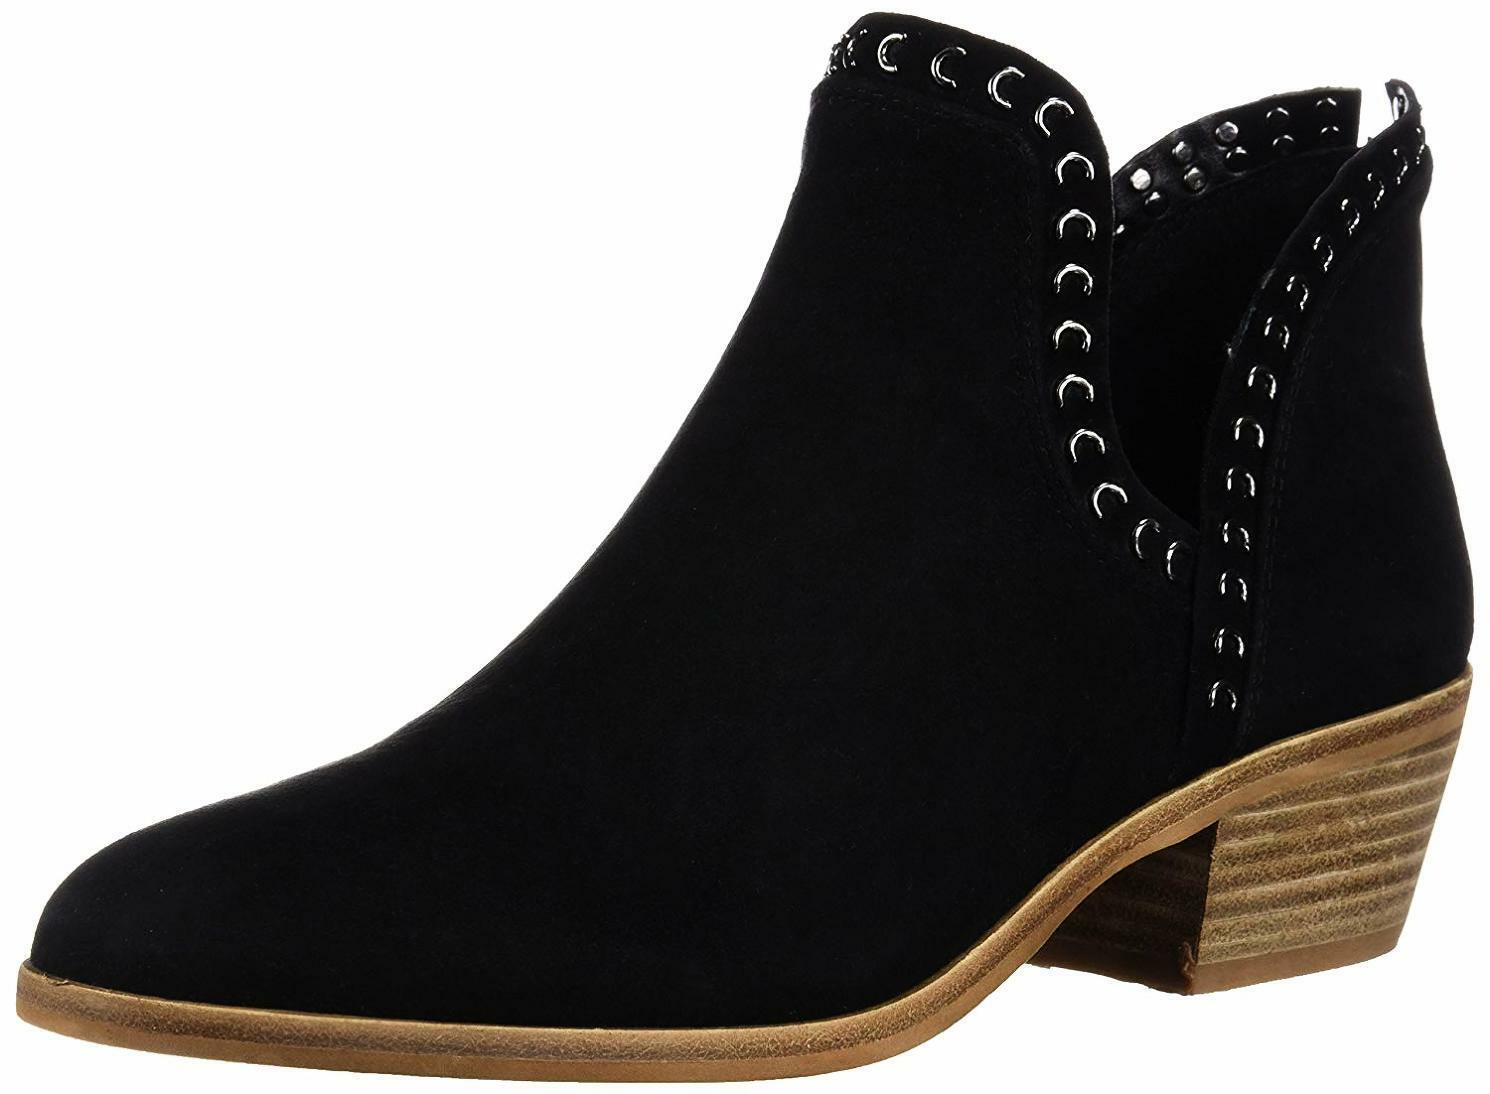 Vince Camuto Women's Prafinta Ankle Boot - Choose SZ color